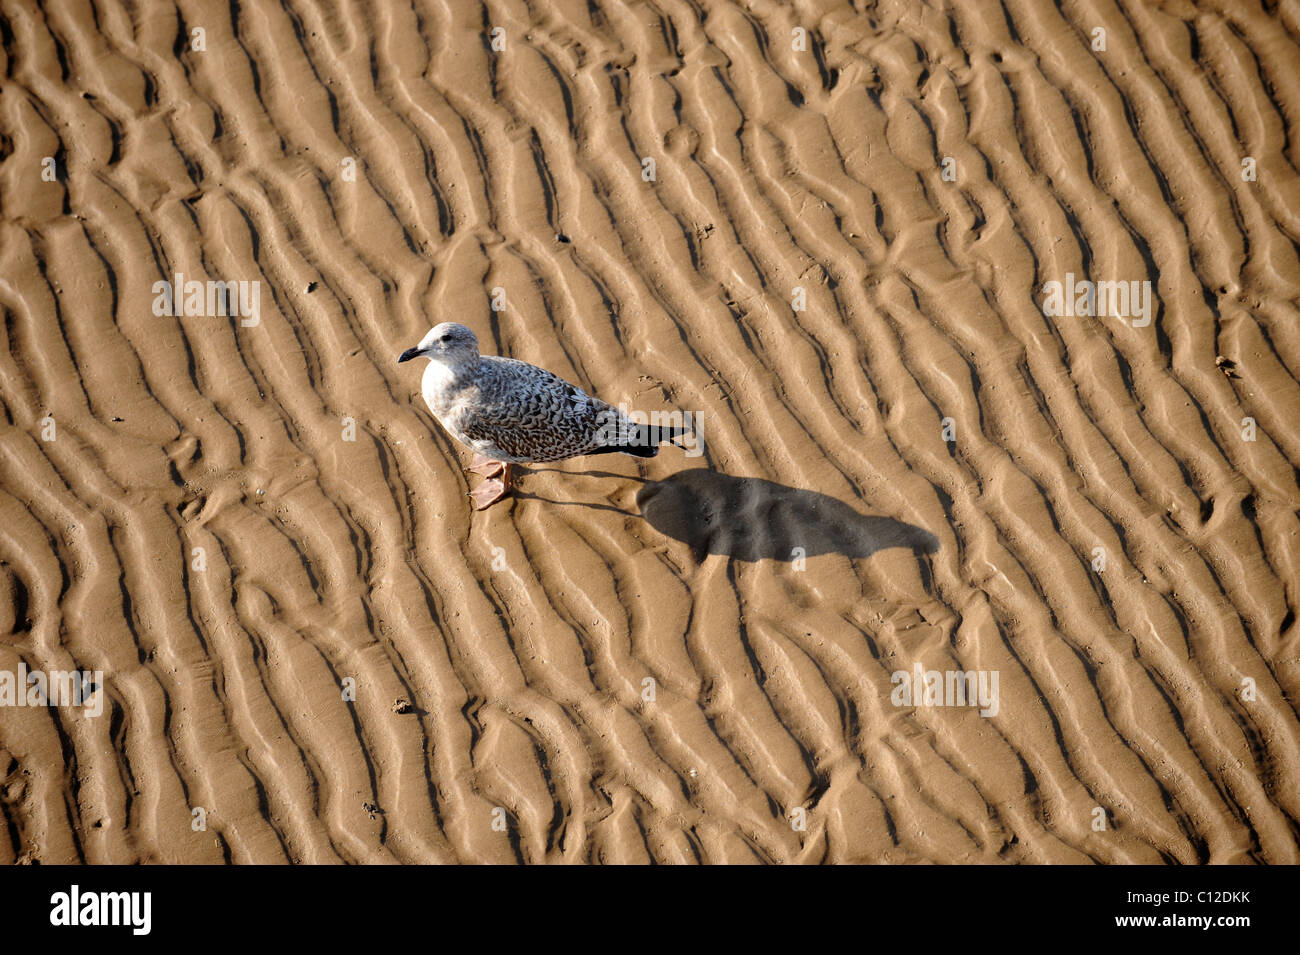 A Seagull on the beach at Weston-Super-Mare Somerset UK - Stock Image